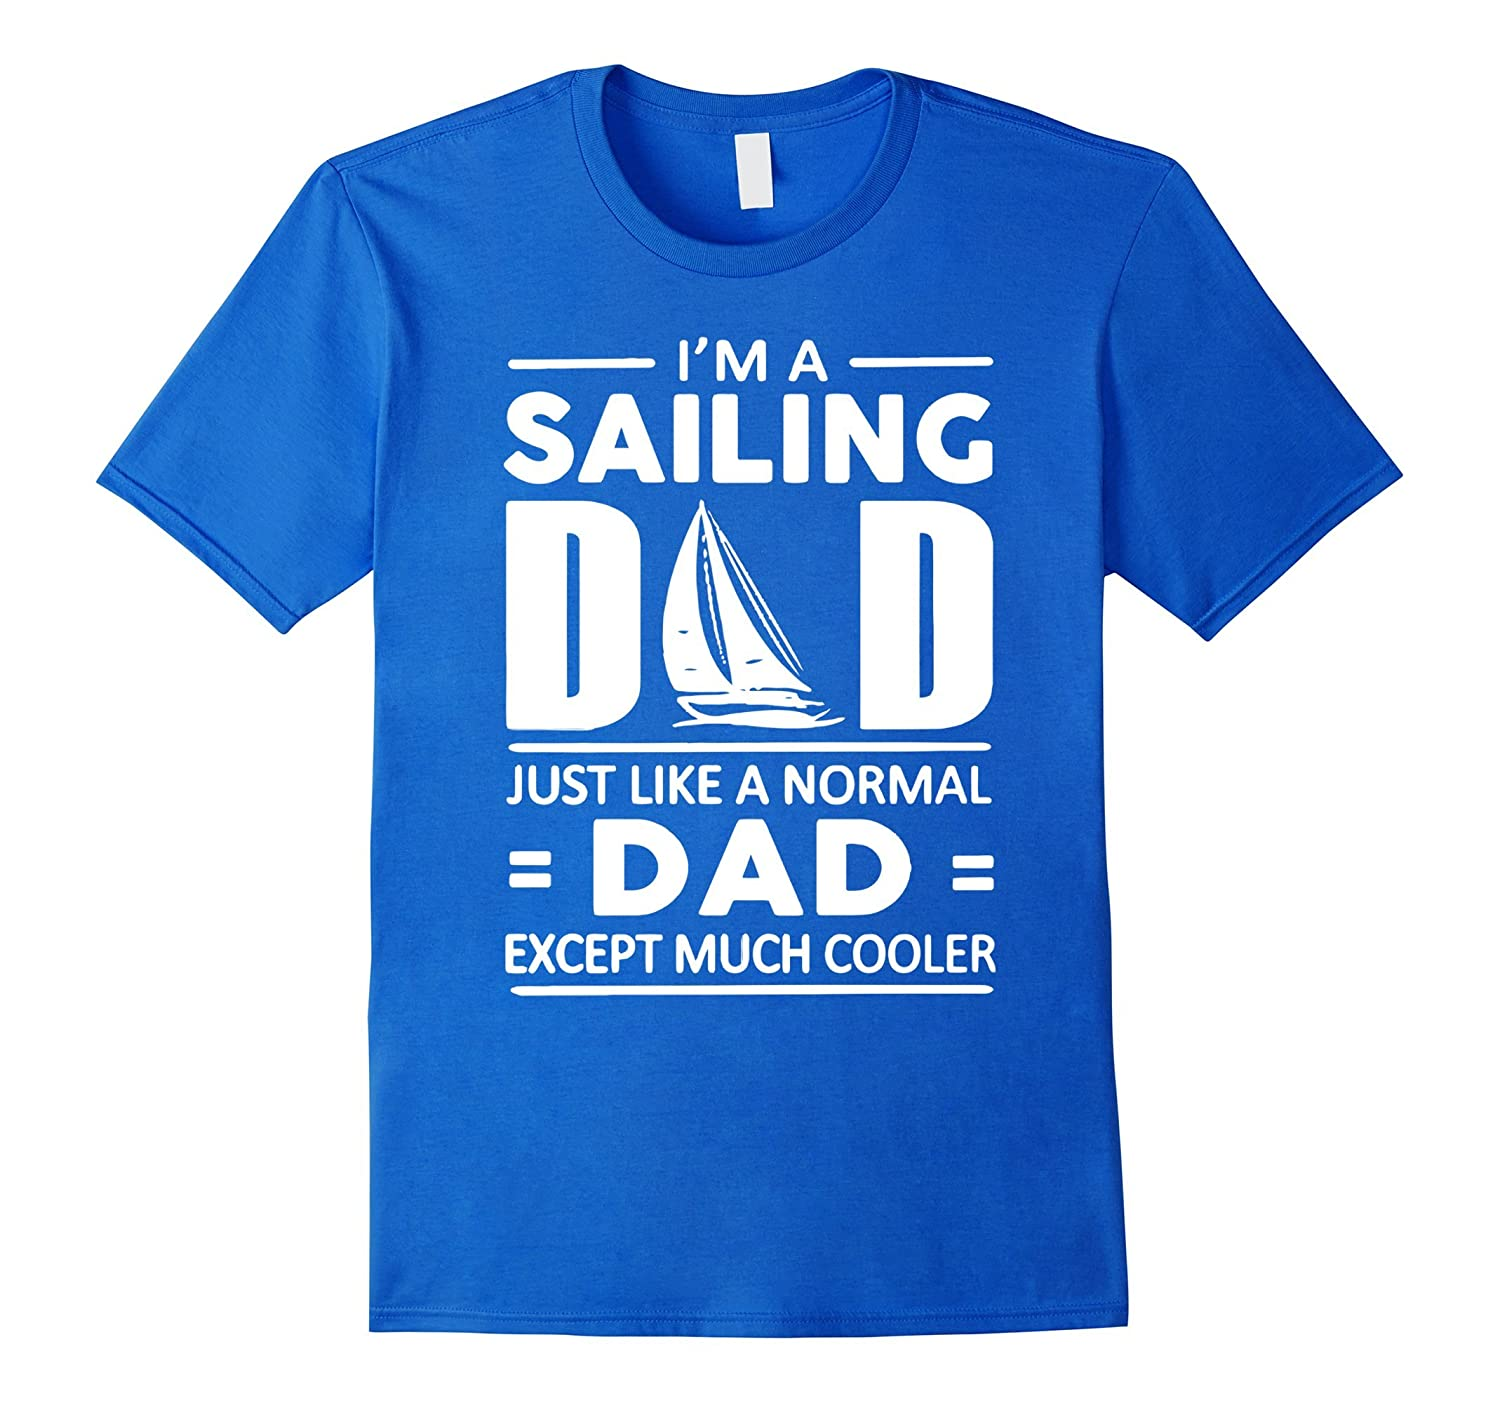 694c2a39 Im A Sailing Dad Just Like Normal Dad Much Cooler T-shirts-BN ...